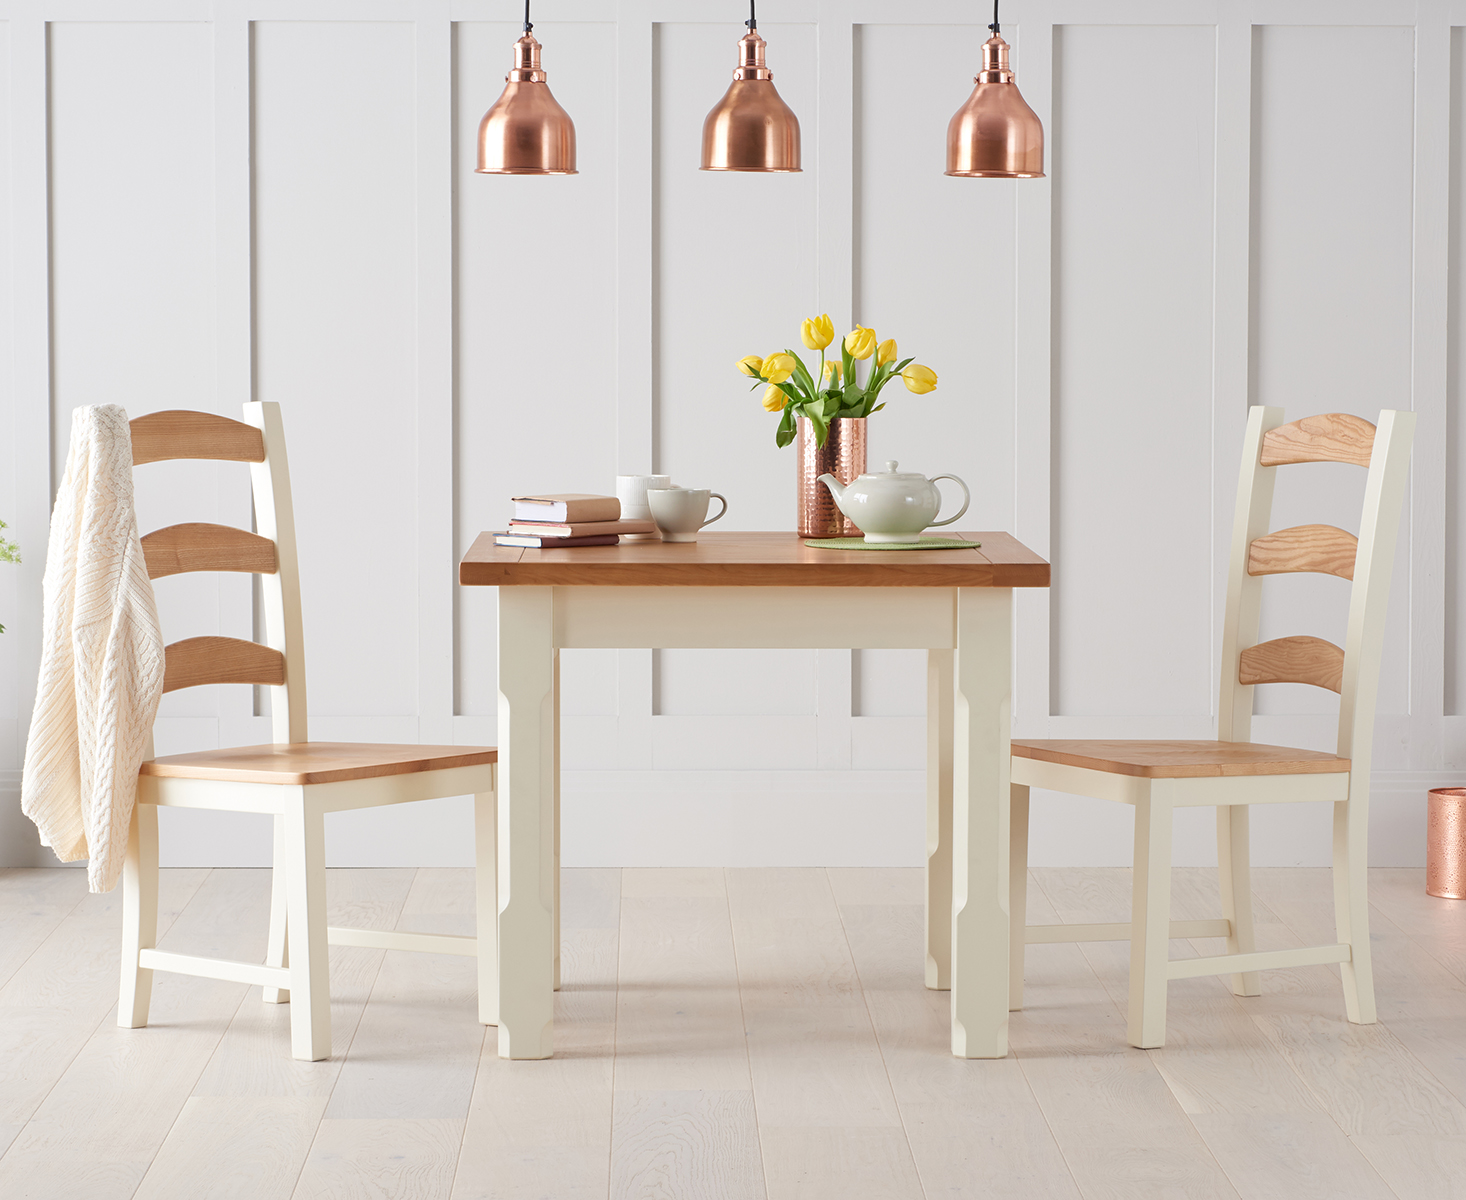 Eton 90cm Solid Pine and Ash Kitchen Table with Eton Chairs